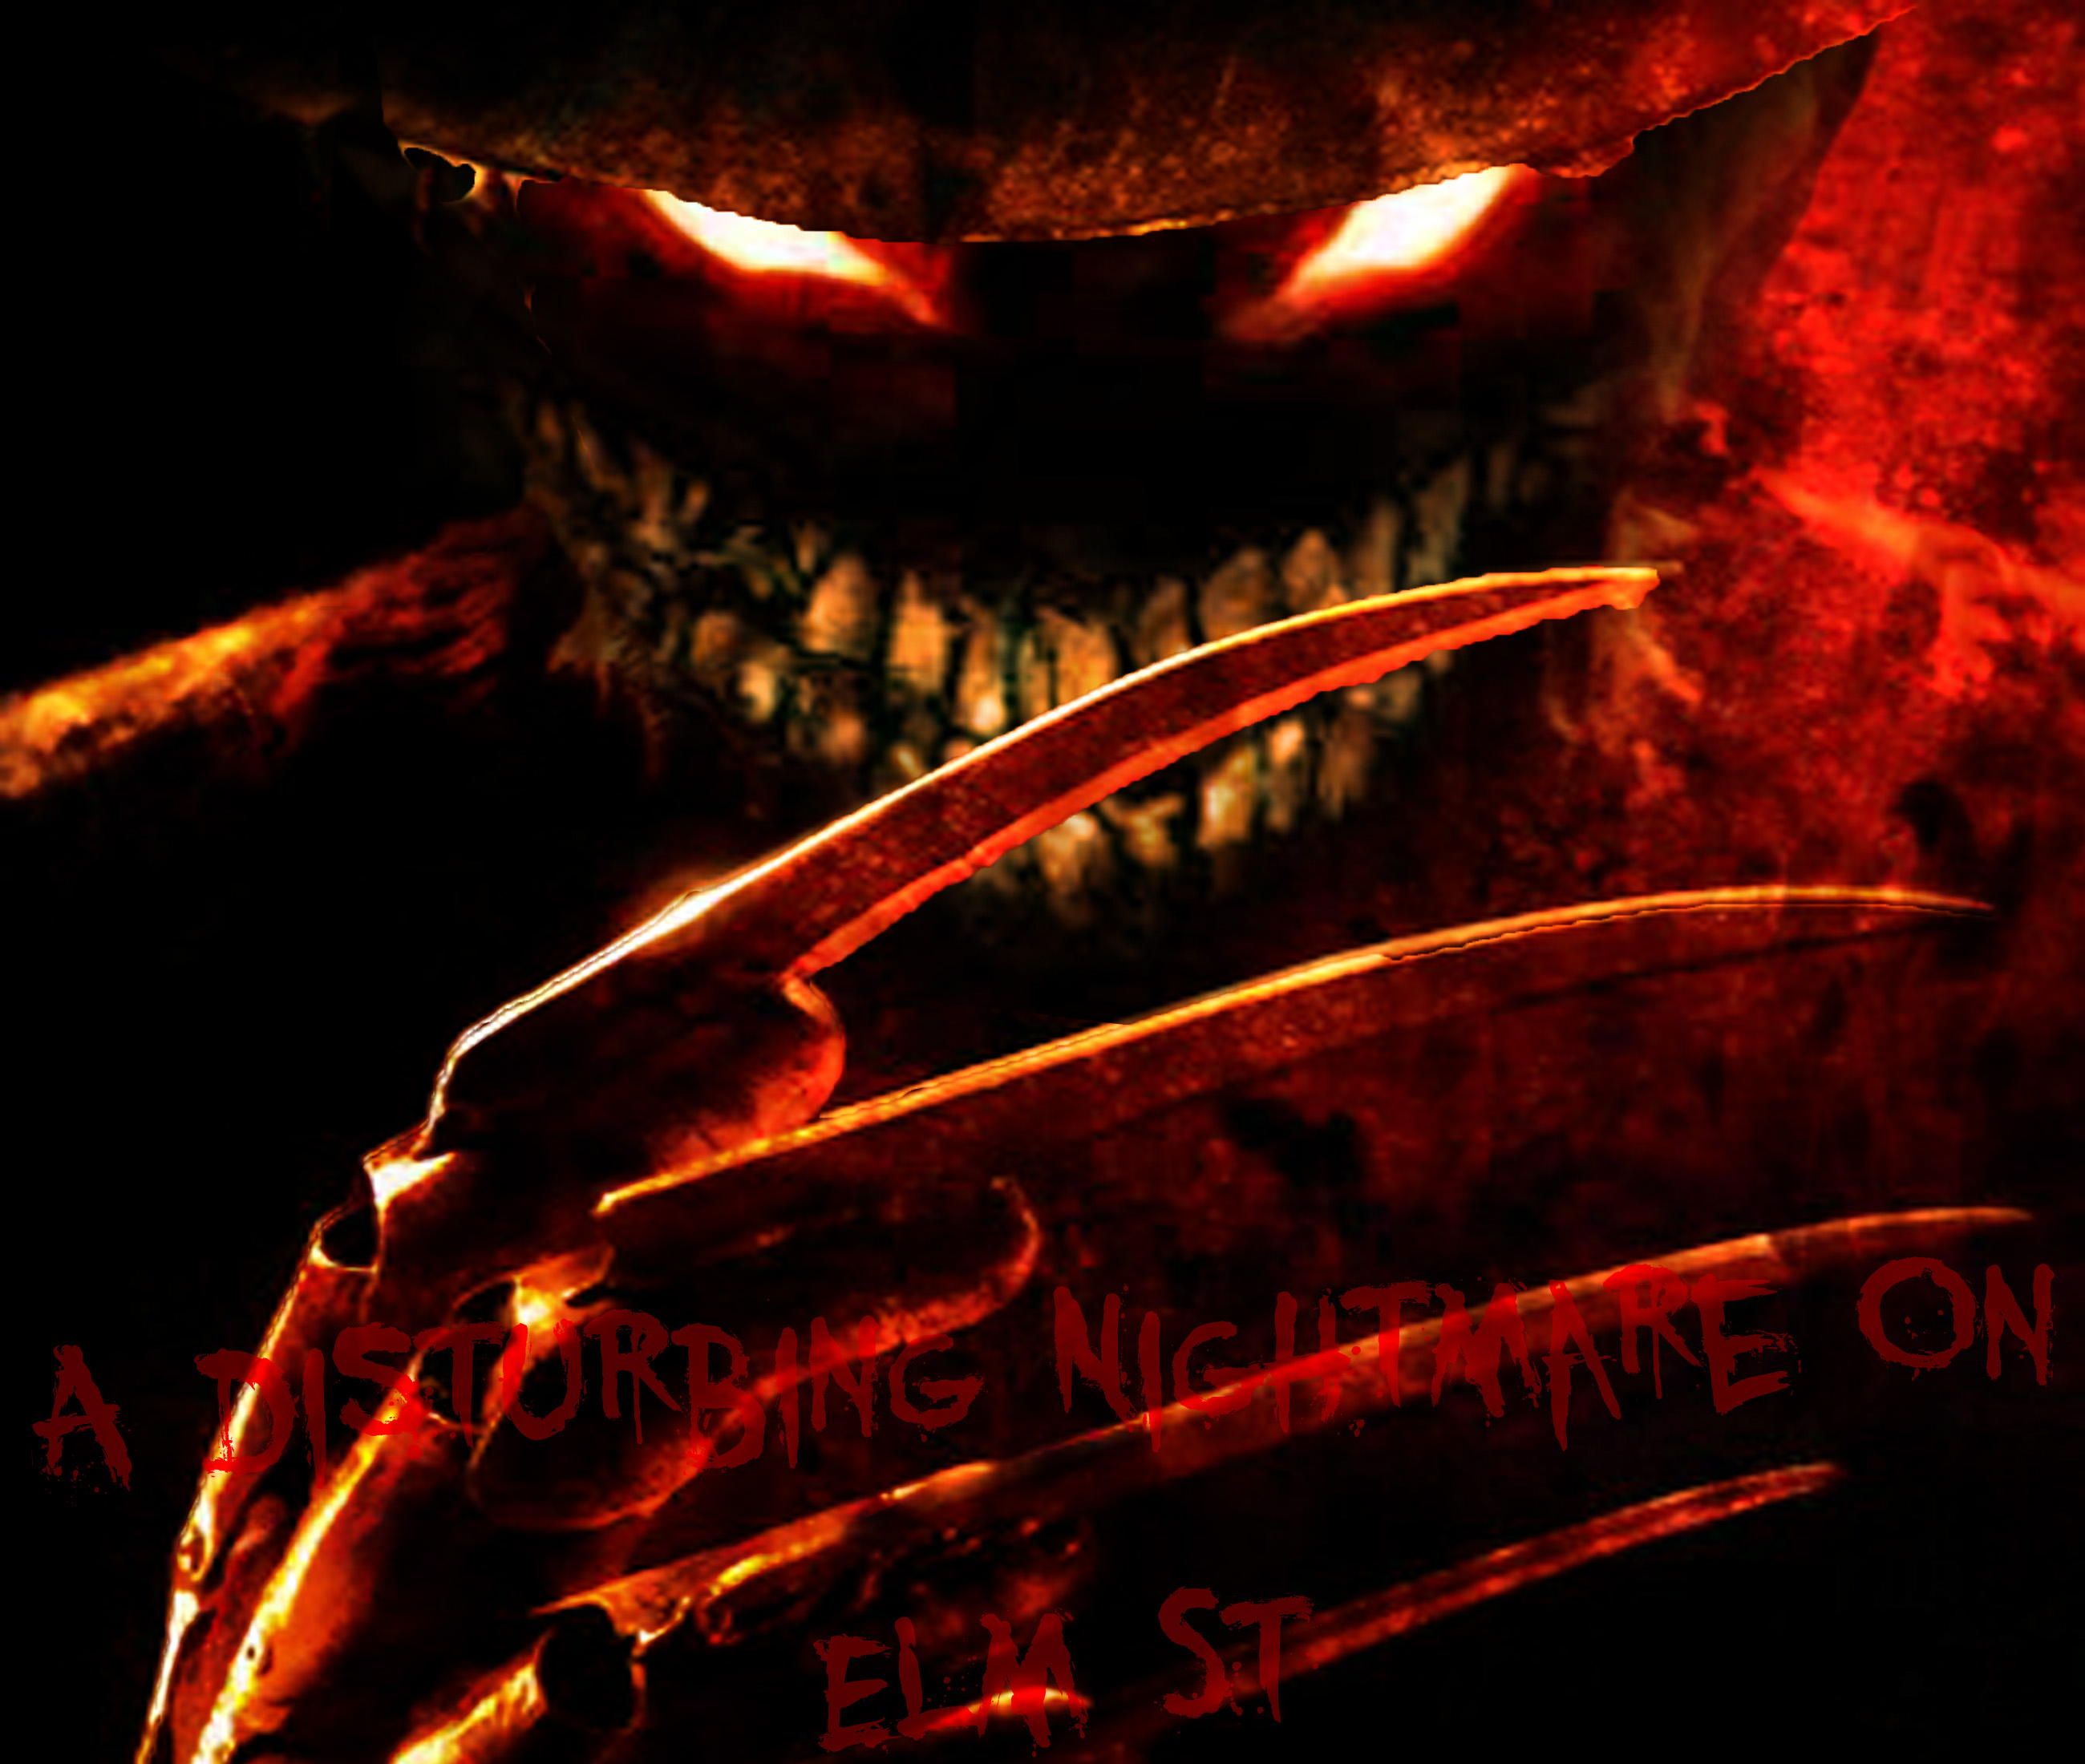 disturbed krueger wallpaper 1 by shadowxzeos d46yels 2600x2200